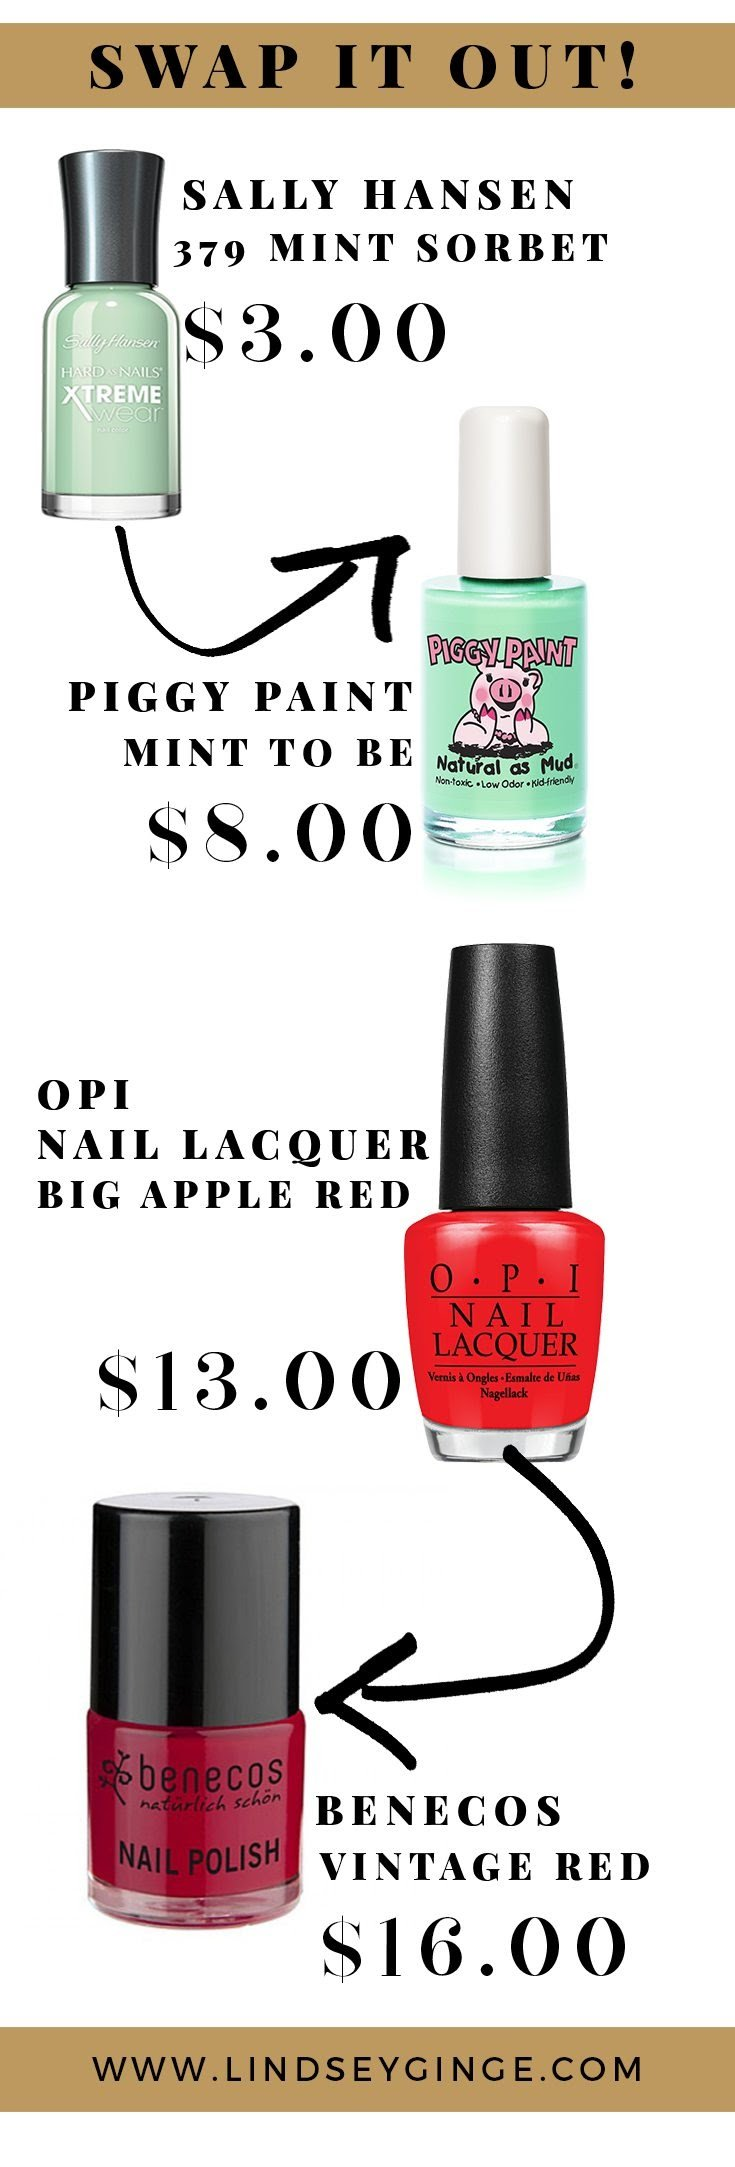 NAIL POLISH SWAPT IT OUT INFOGRAPHIC